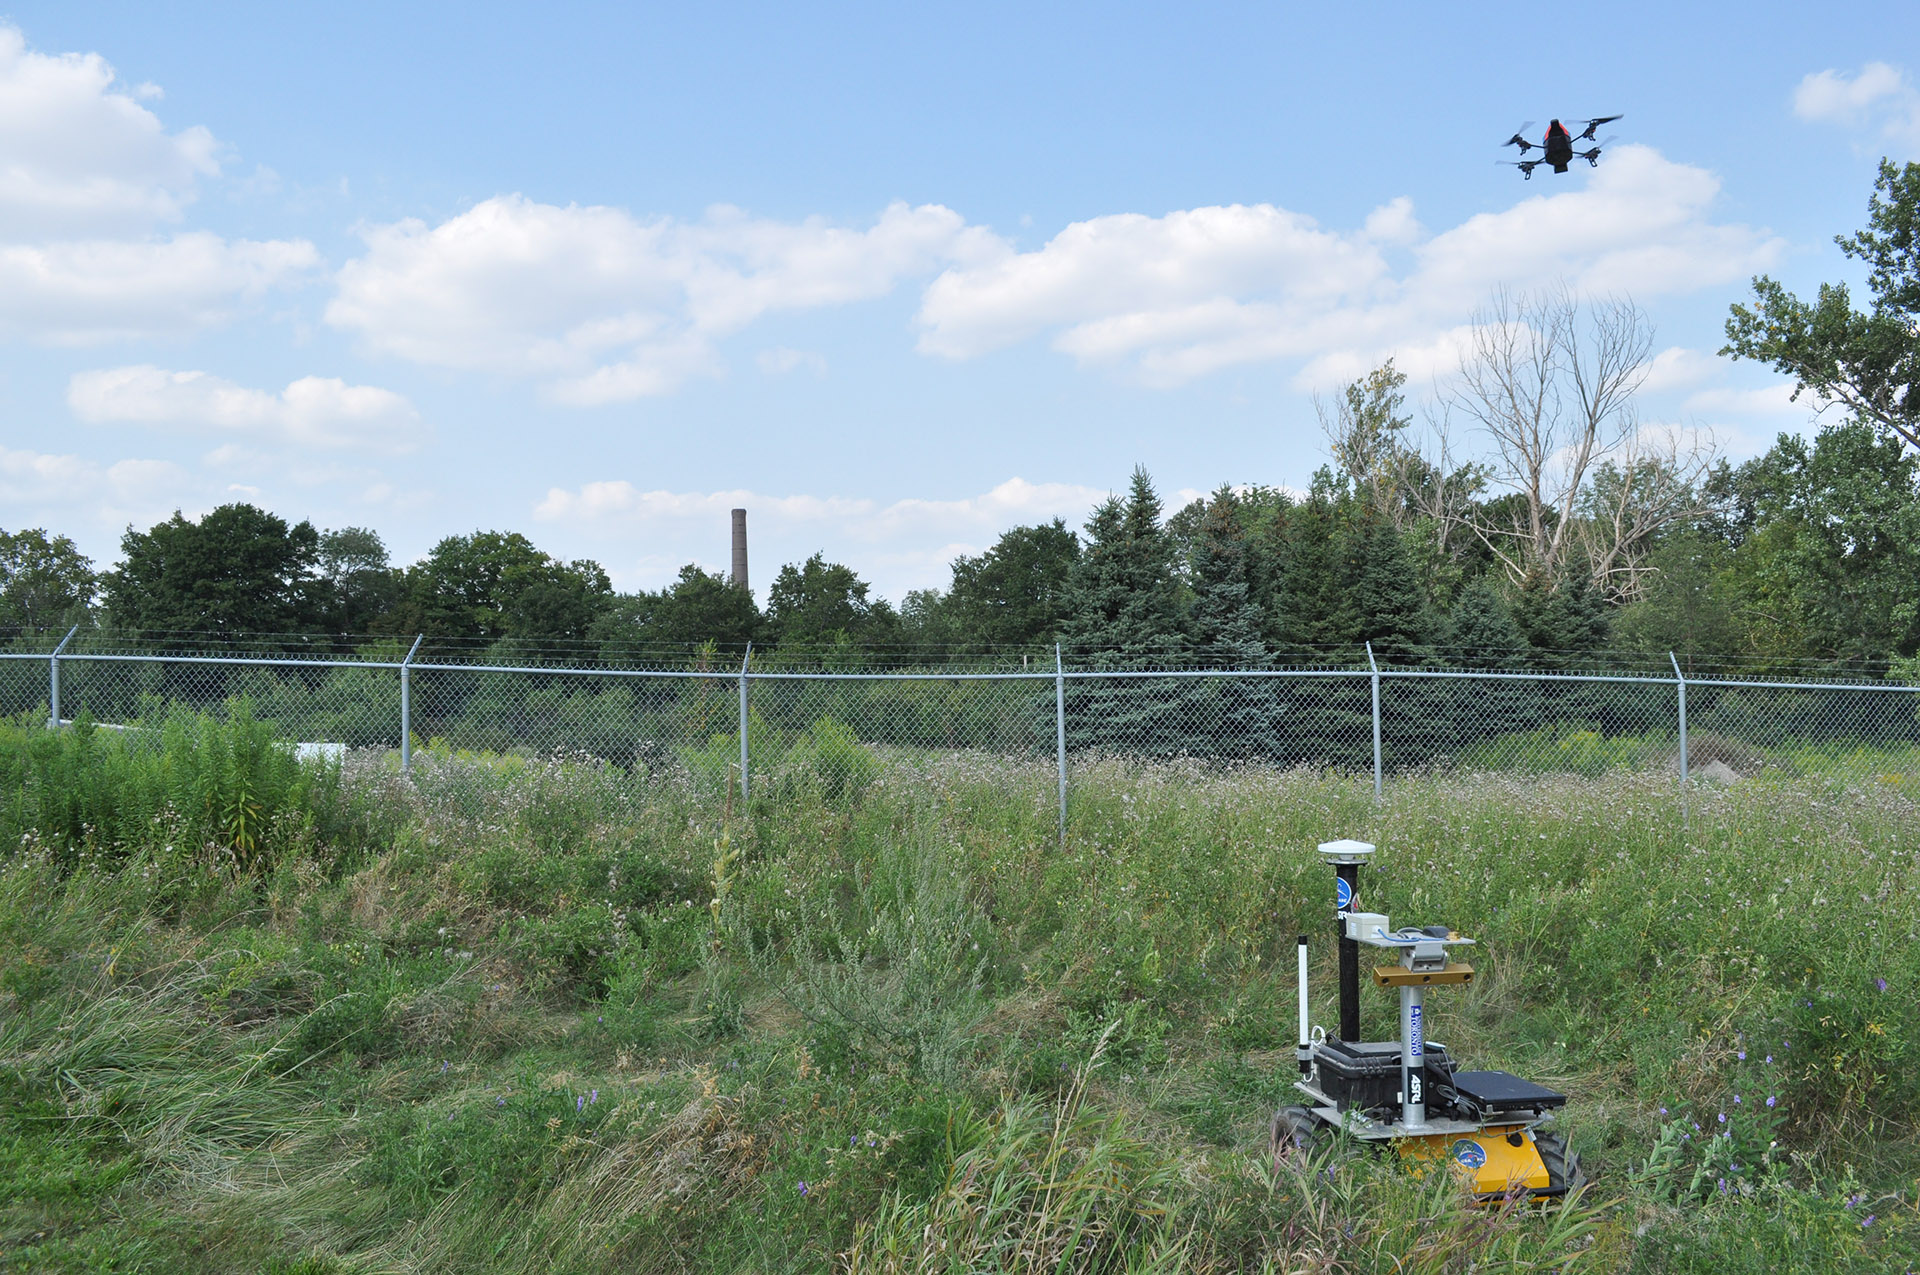 Quadrocopter and Husky robots at UTIAS field tests.